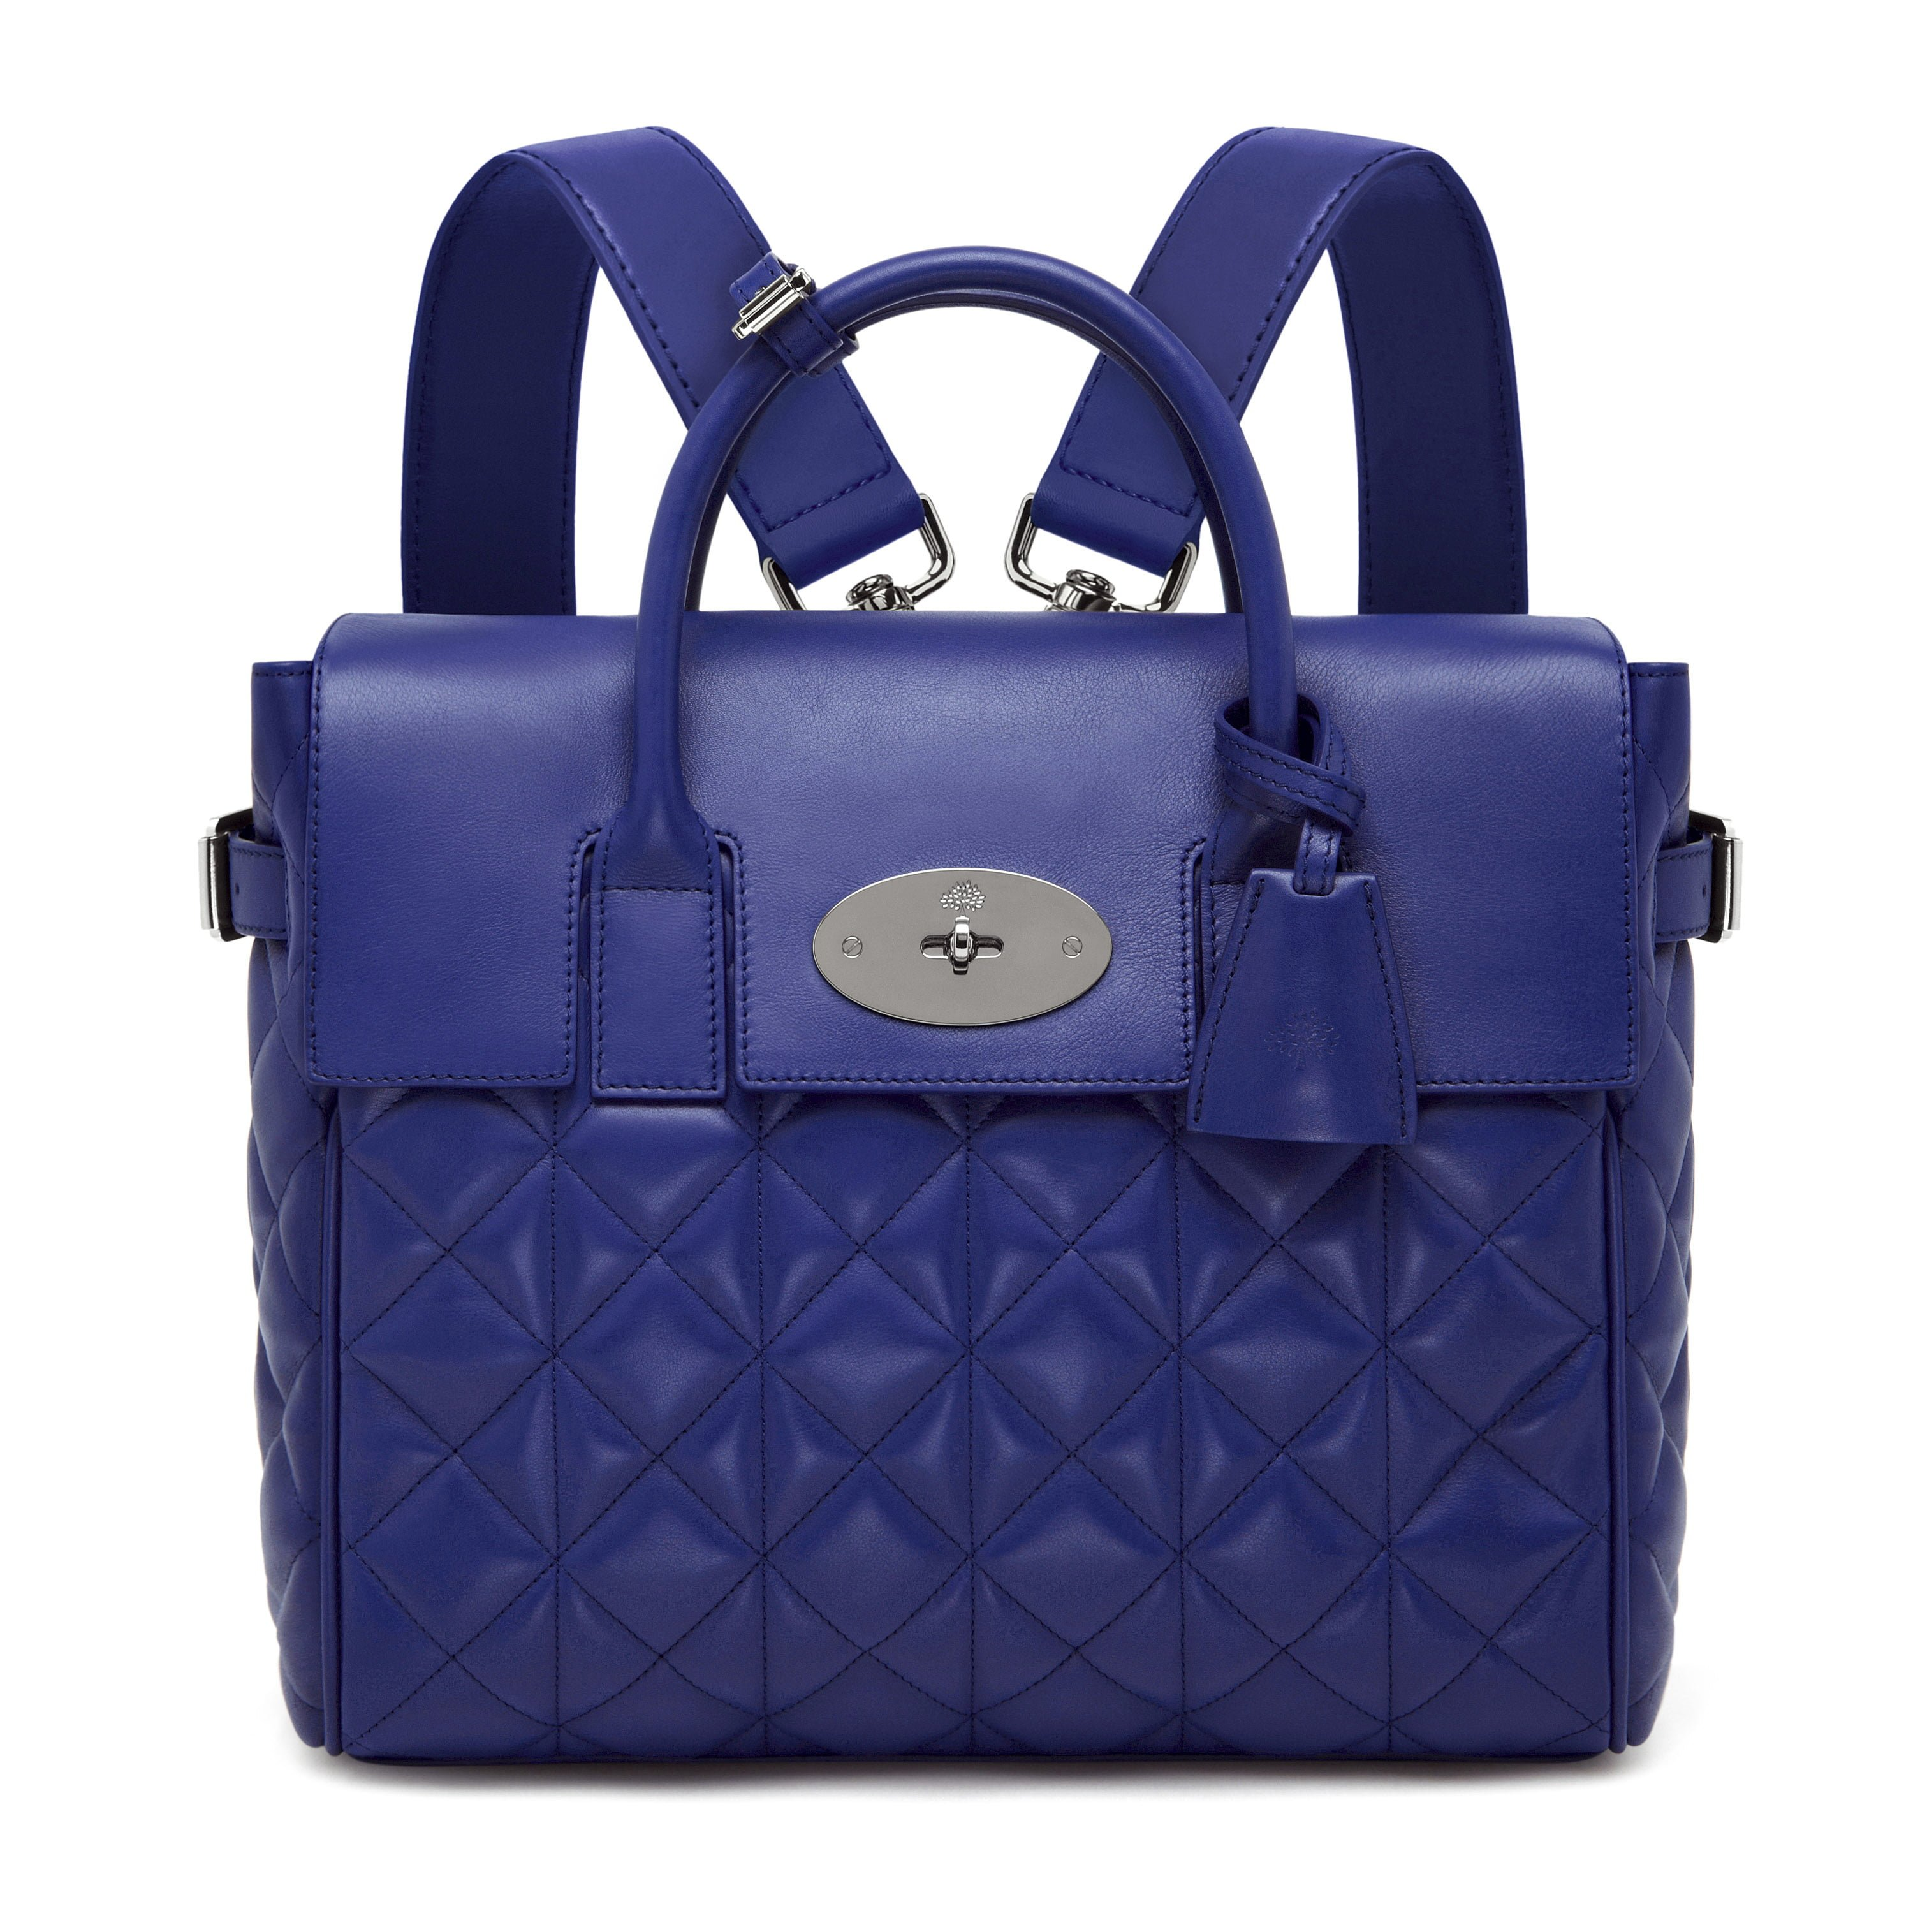 Cara Delevingne Bag in Indigo Quilted Nappa